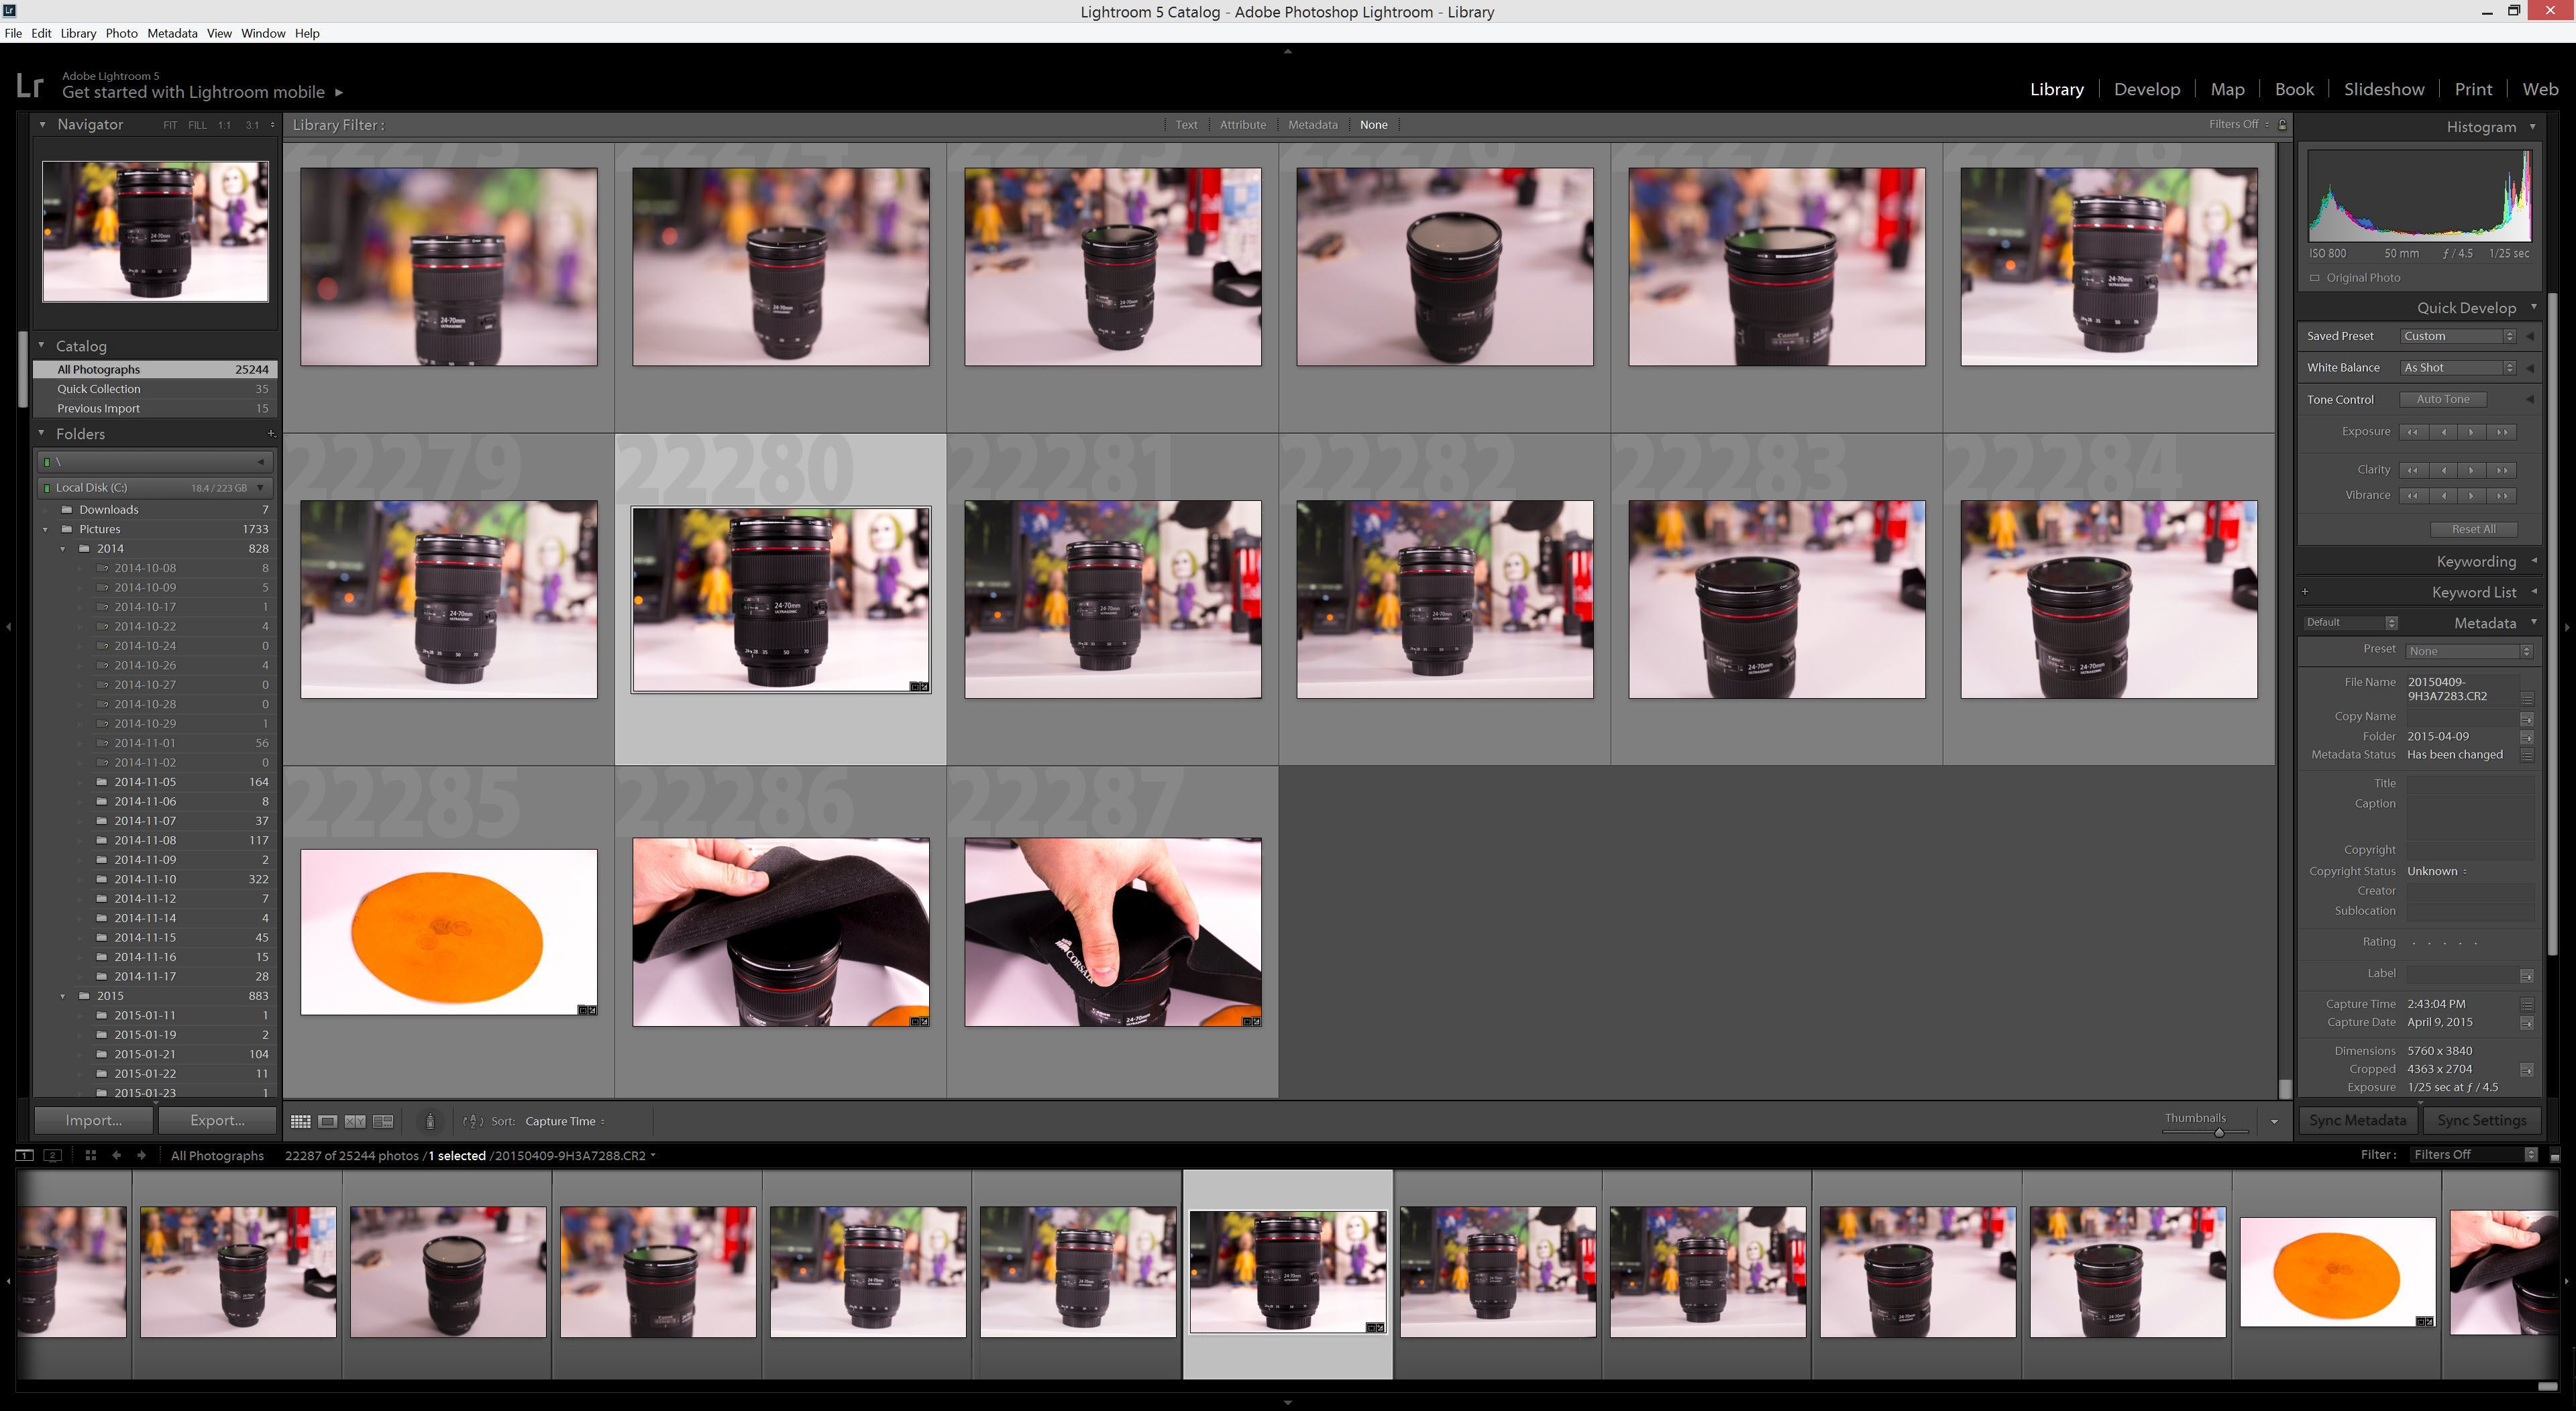 Lightroom cs6 update | Update to camera support policy in